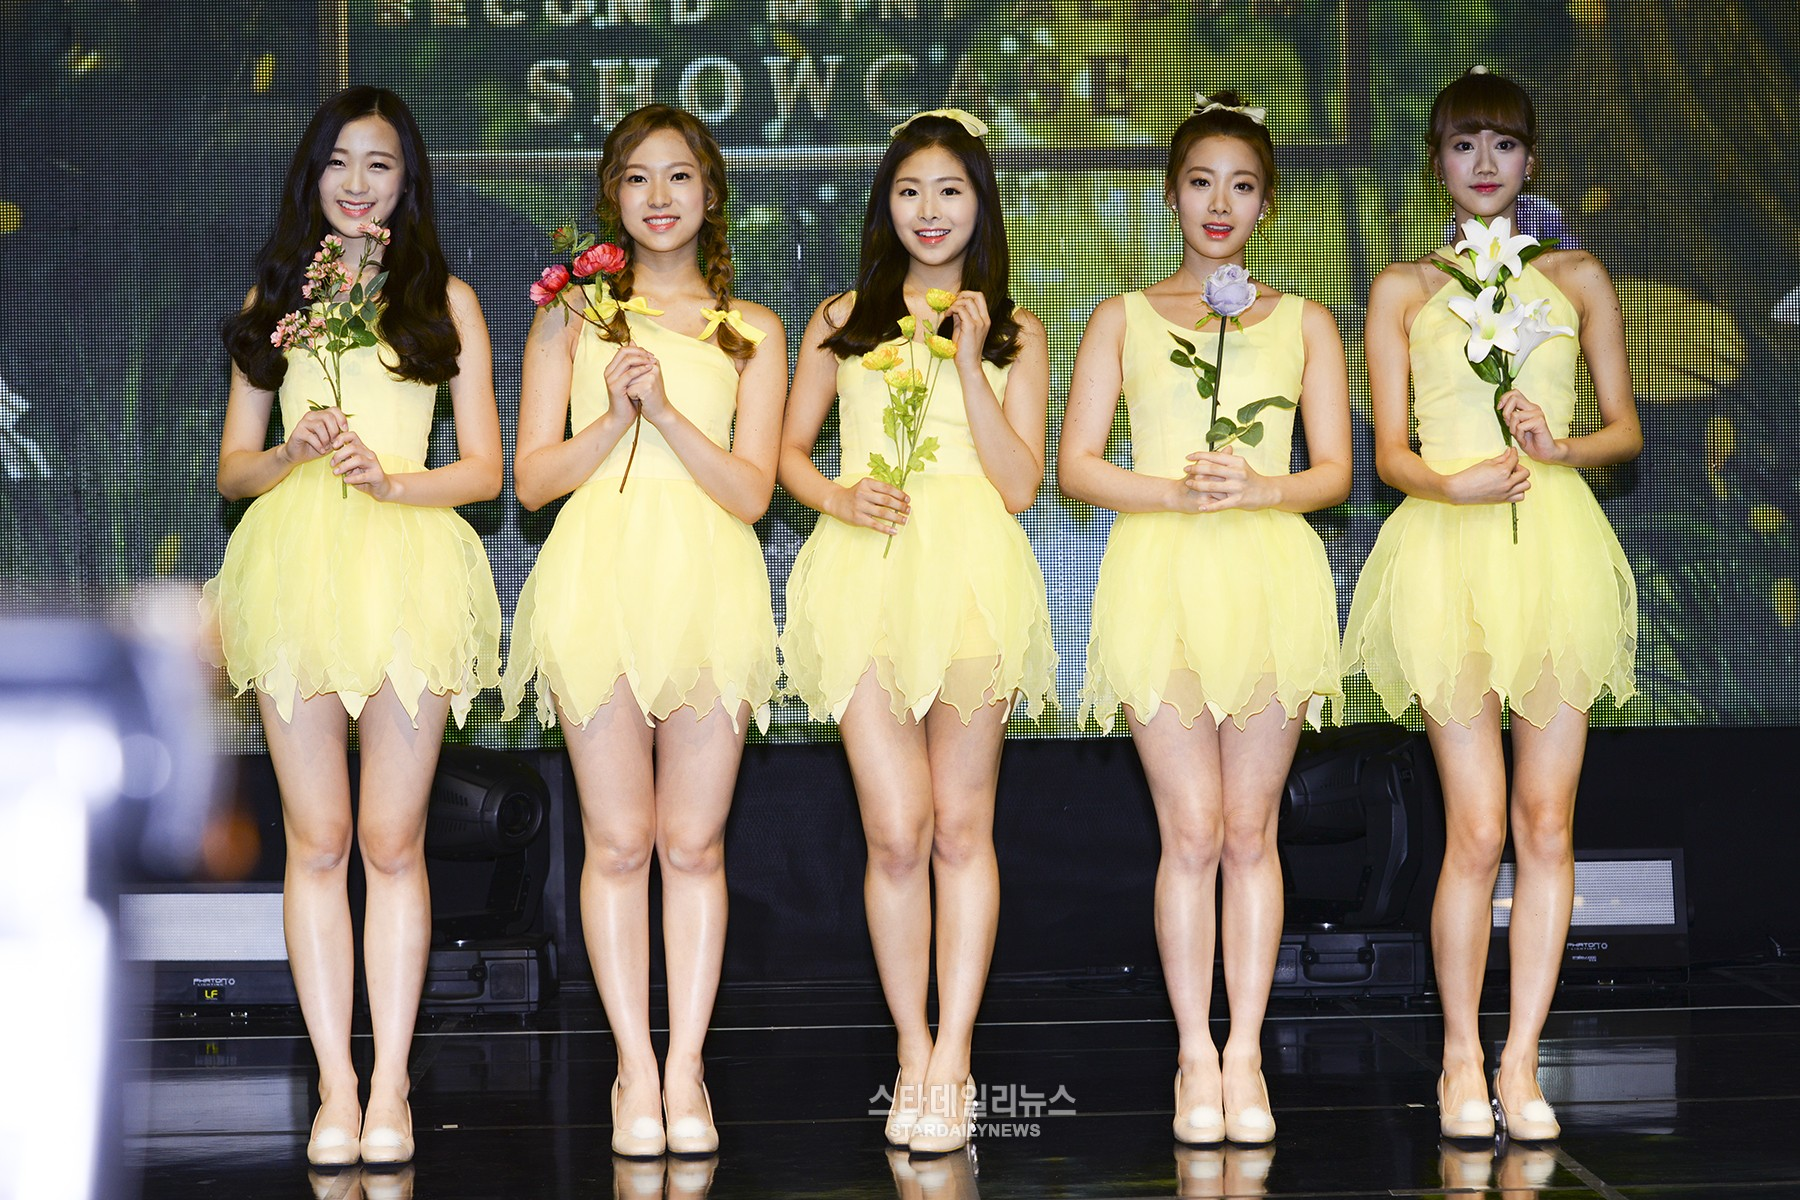 April Talks Favorite Outfit Concepts And What They Would Like To Try Next